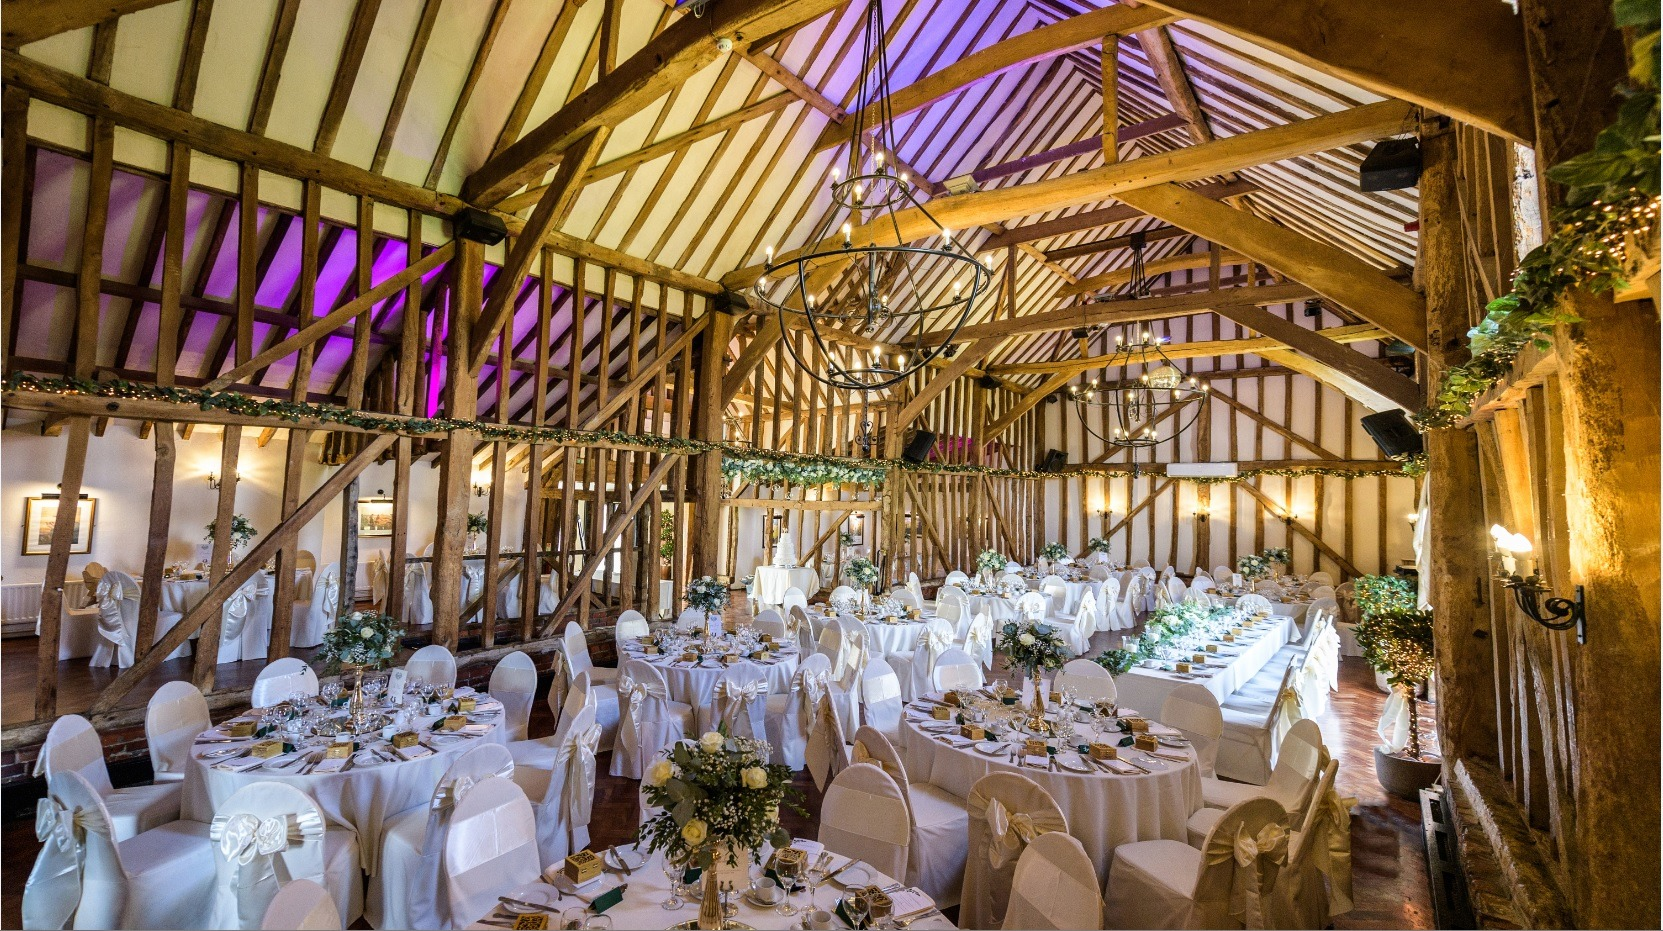 Why Choose Crondon Park for Your Special Day?